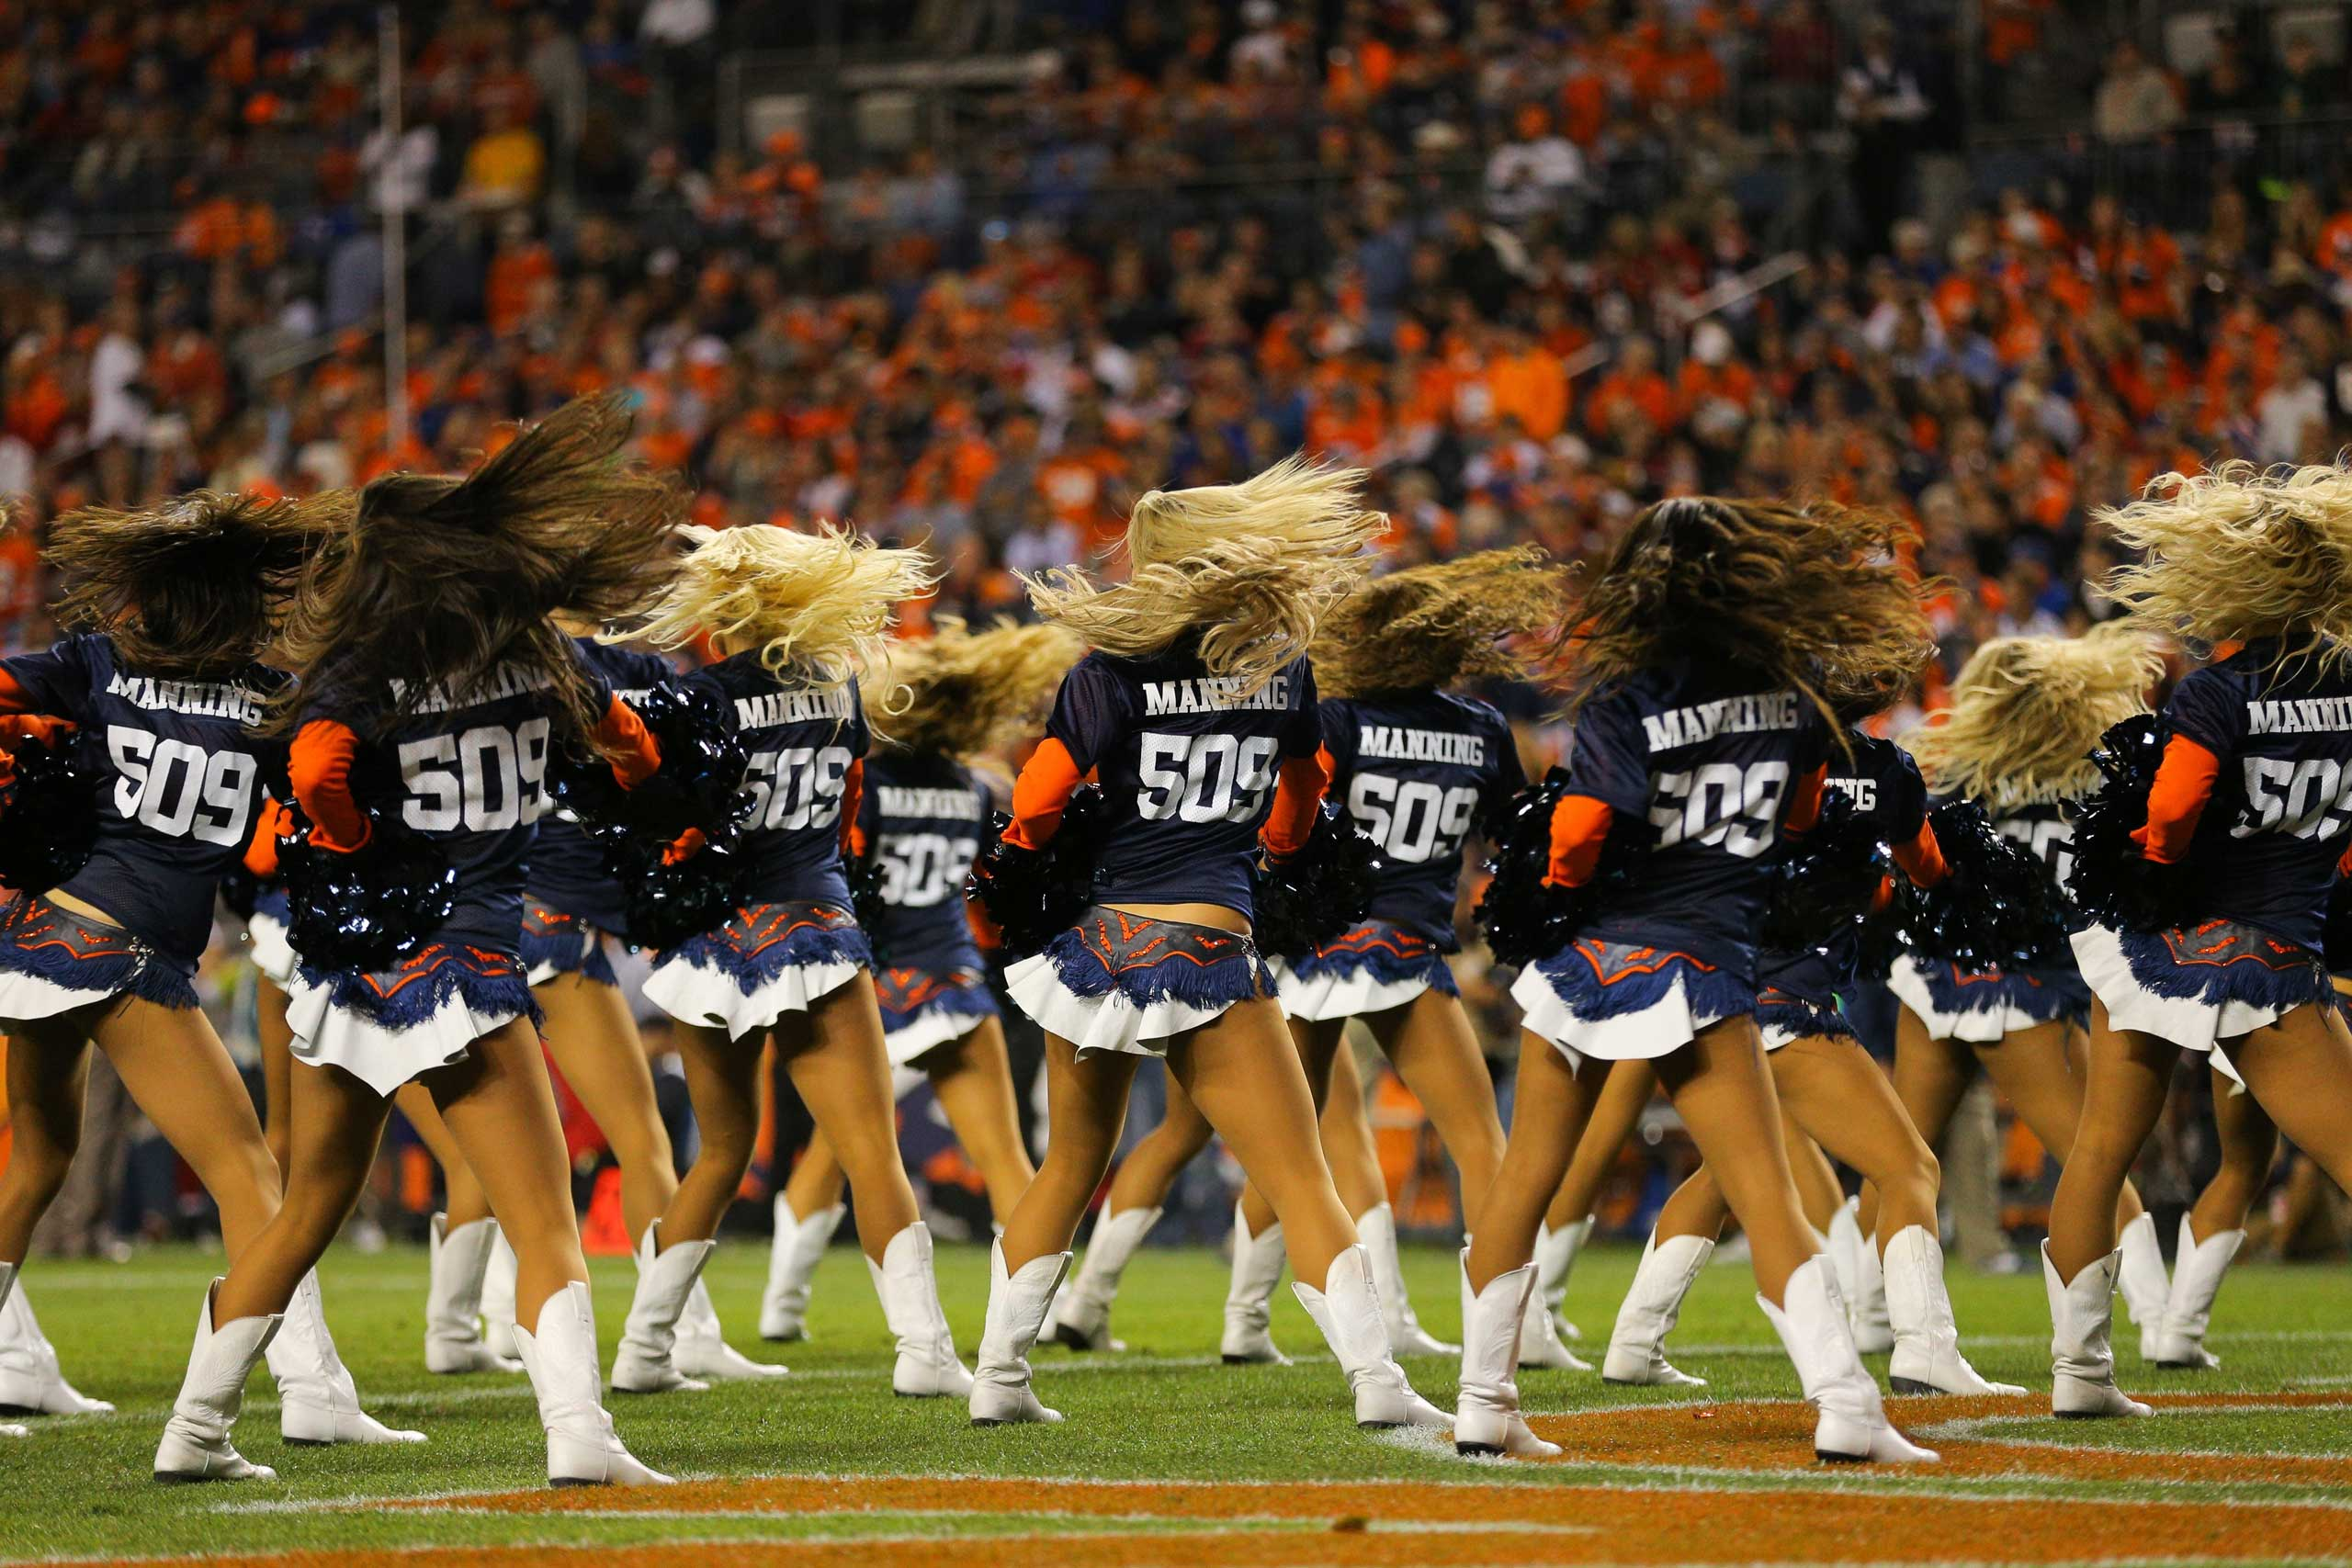 Oct. 19, 2014. Denver Broncos cheerleaders perform wearing  509  jerseys celebrating quarterback Peyton Manning's record setting 509th career touchdown pass during a game between the Denver Broncos and the San Francisco 49ers at Sports Authority Field at Mile High in Denver, Col.